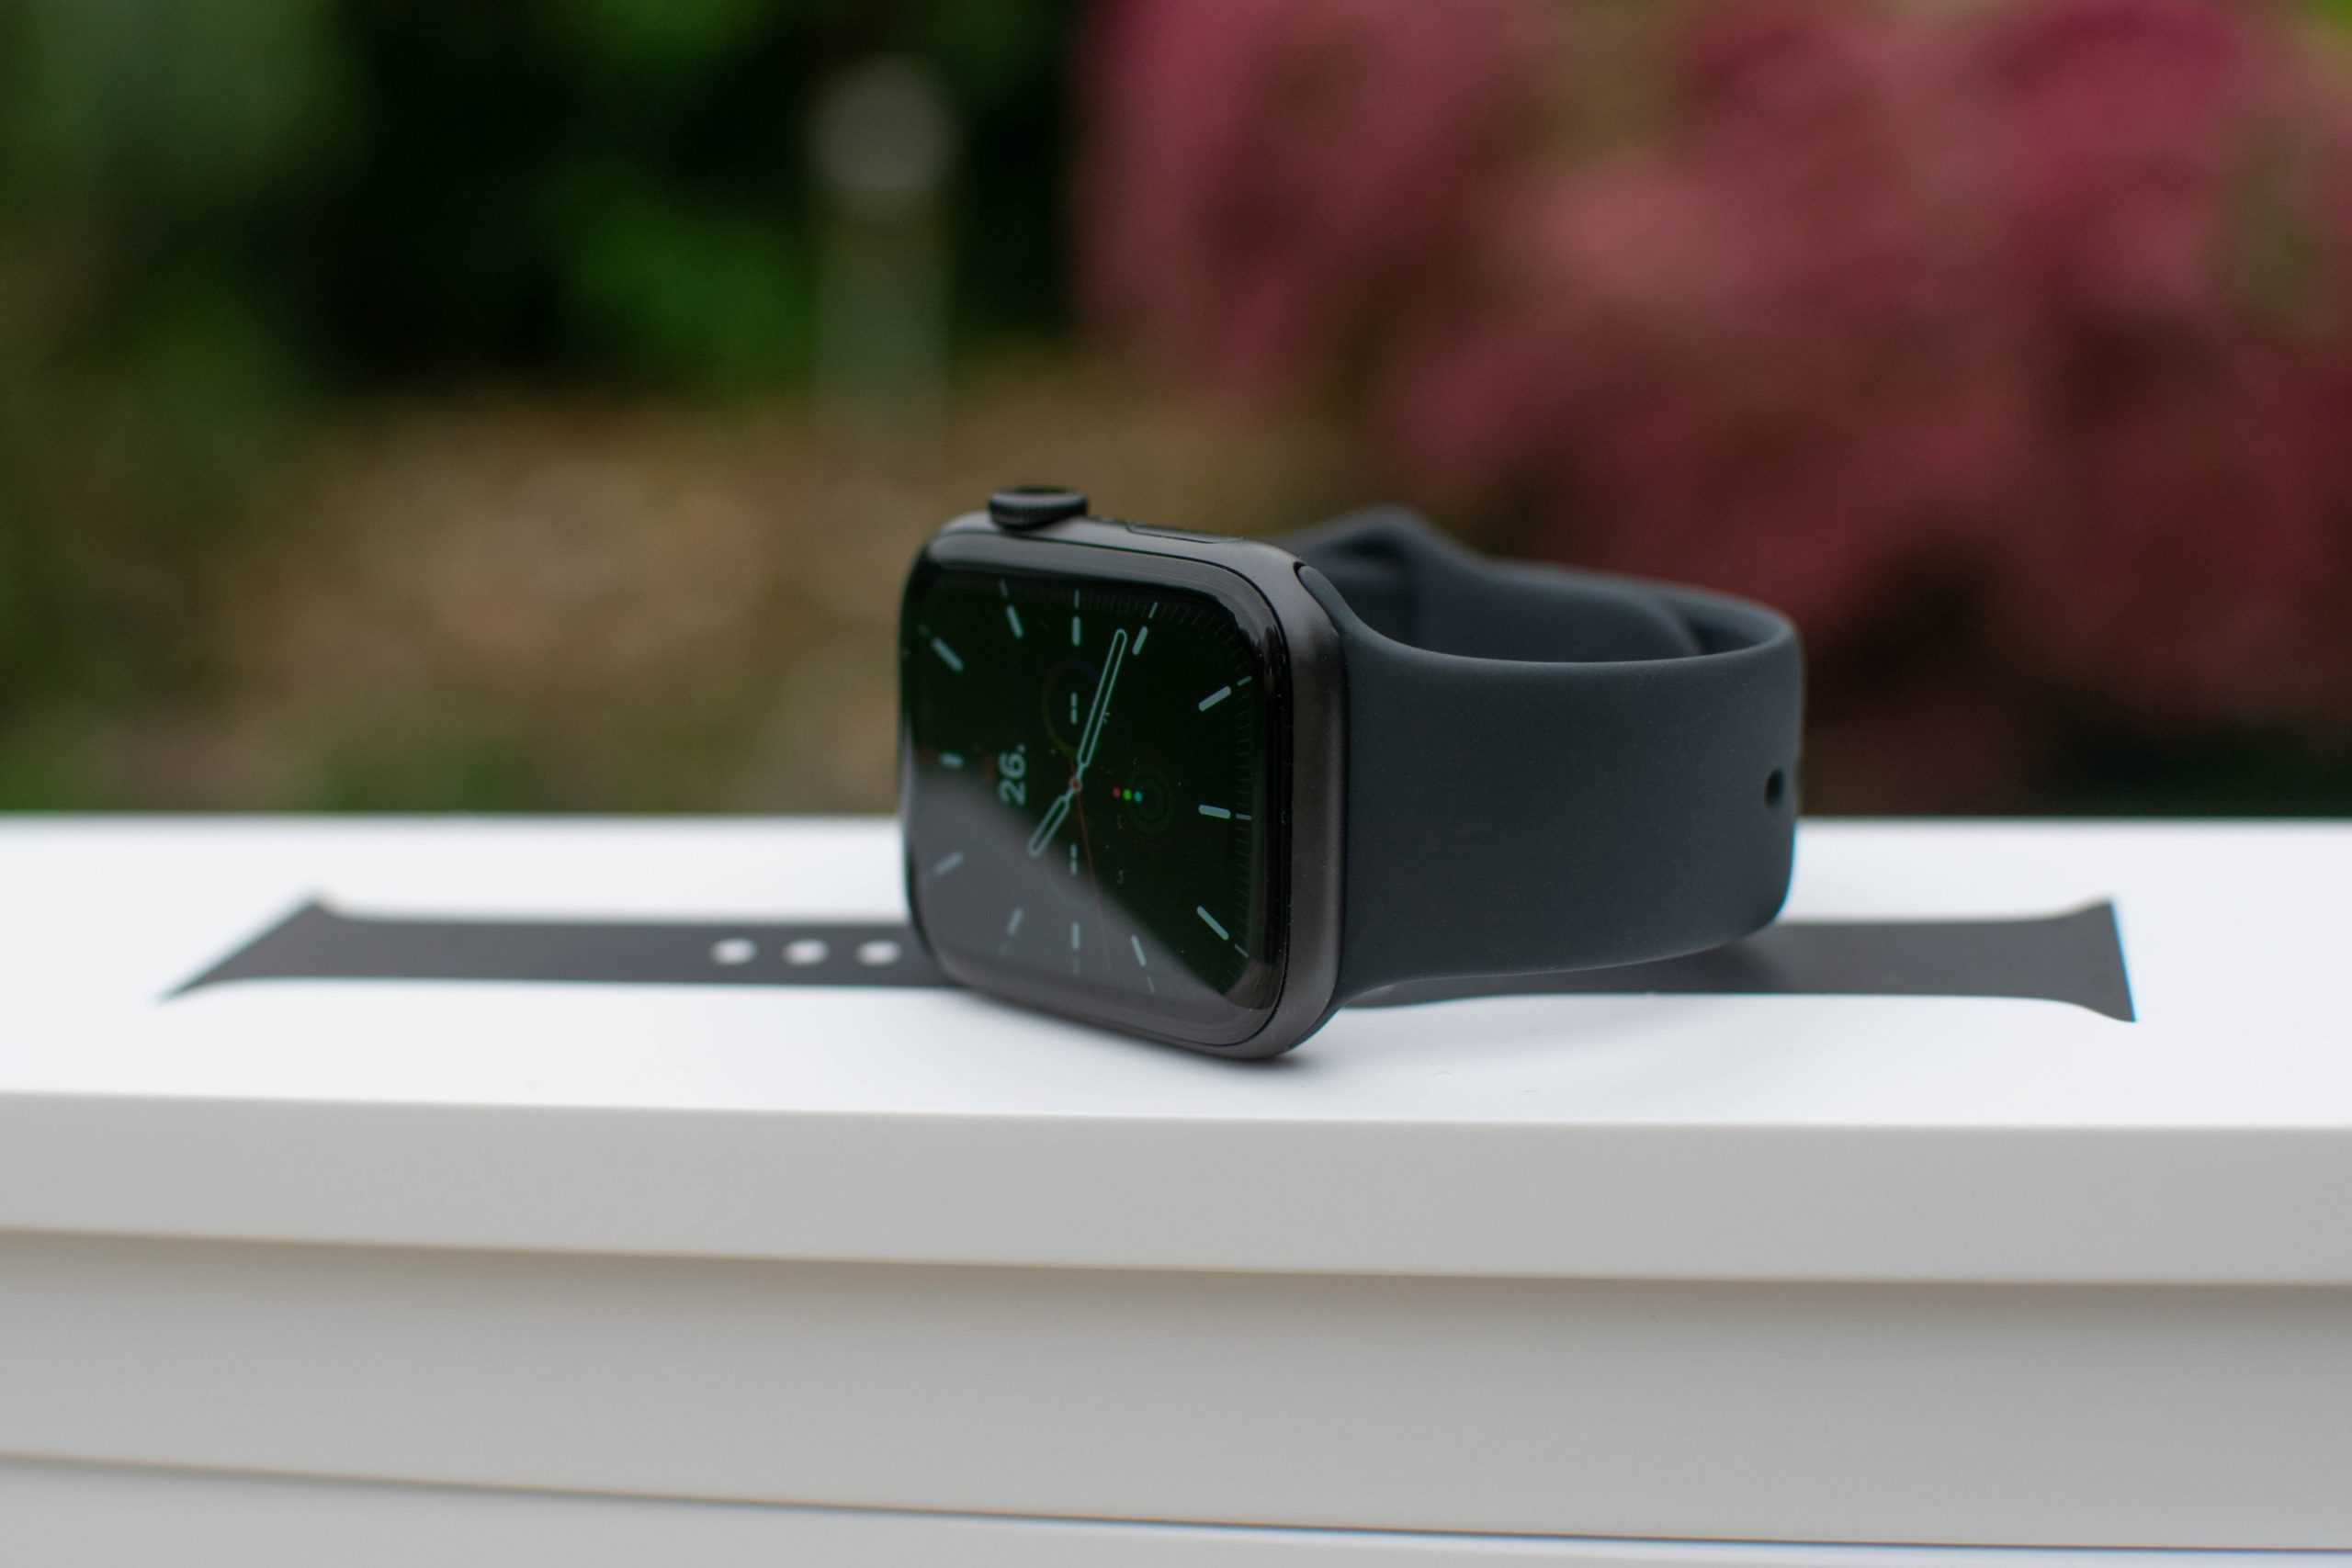 """Apple Watch Series 6 Review """"data-caption ="""" Apple Watch Series 6 Review """">               review apple watch series 6                       Review of the Apple Watch Series 6                                                                        <img class="""